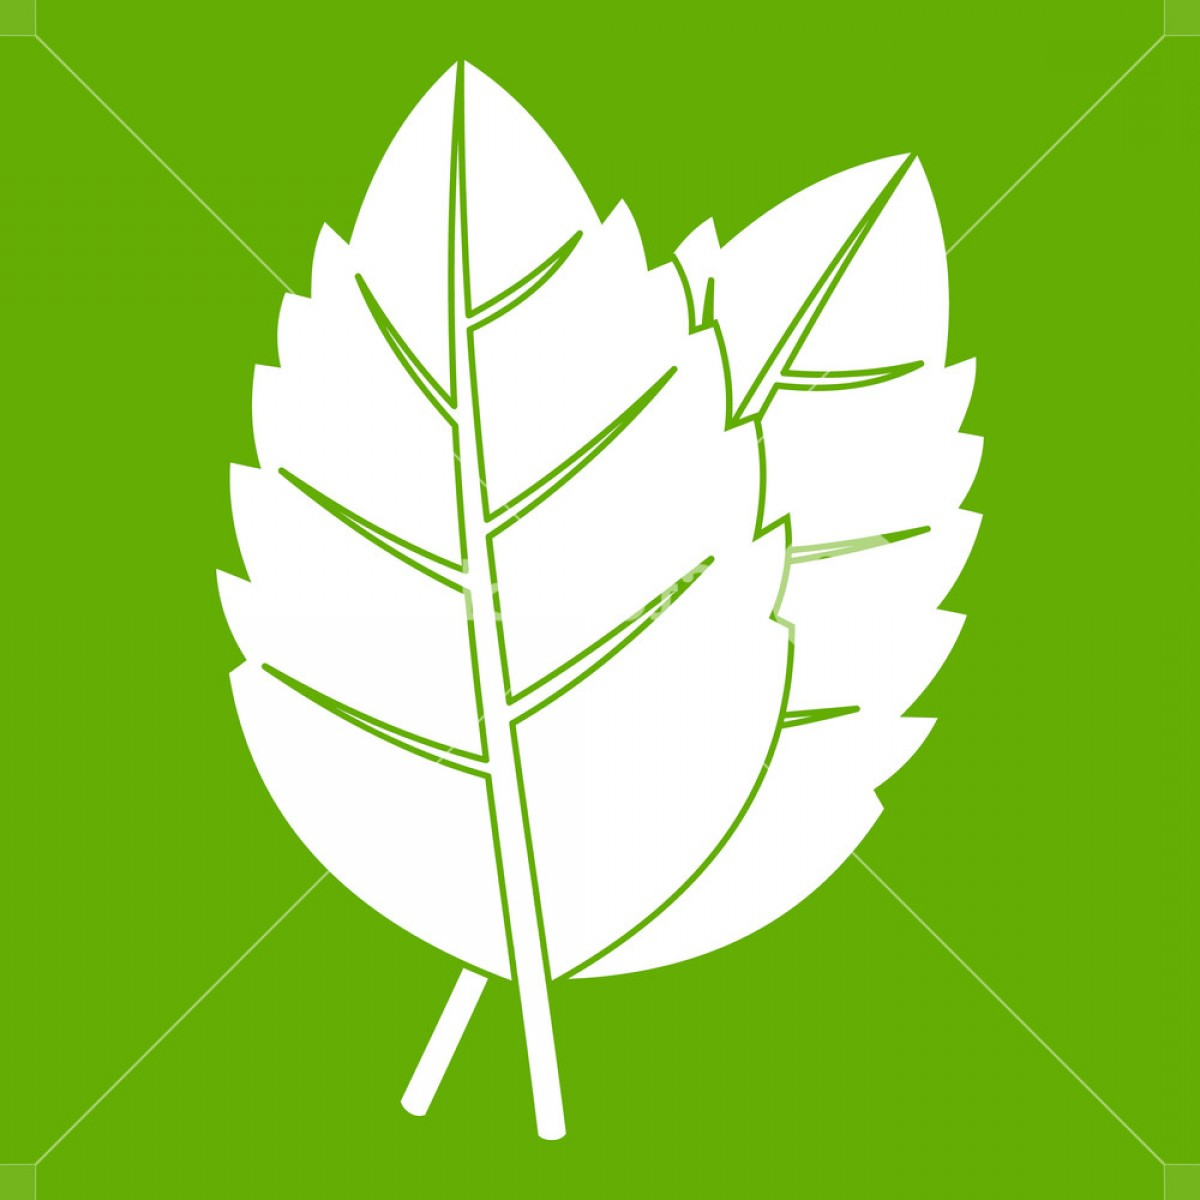 Basil Vector: Two Basil Leaves Icon White Isolated On Green Background Vector Illustration Rsxzyiuixjlpmbxj